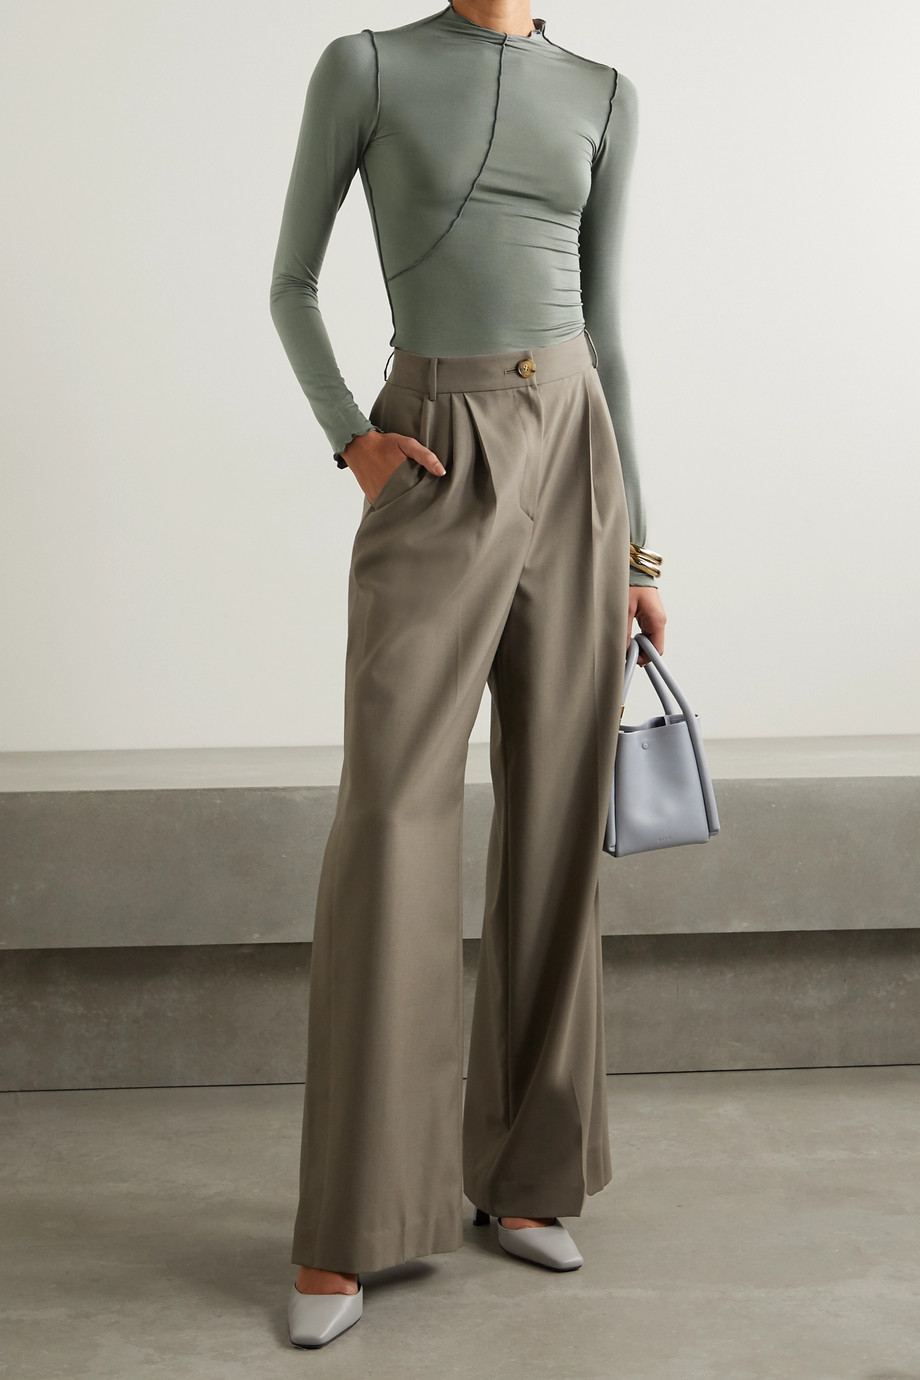 THE LINE BY K Zane stretch-Micro Modal turtleneck top